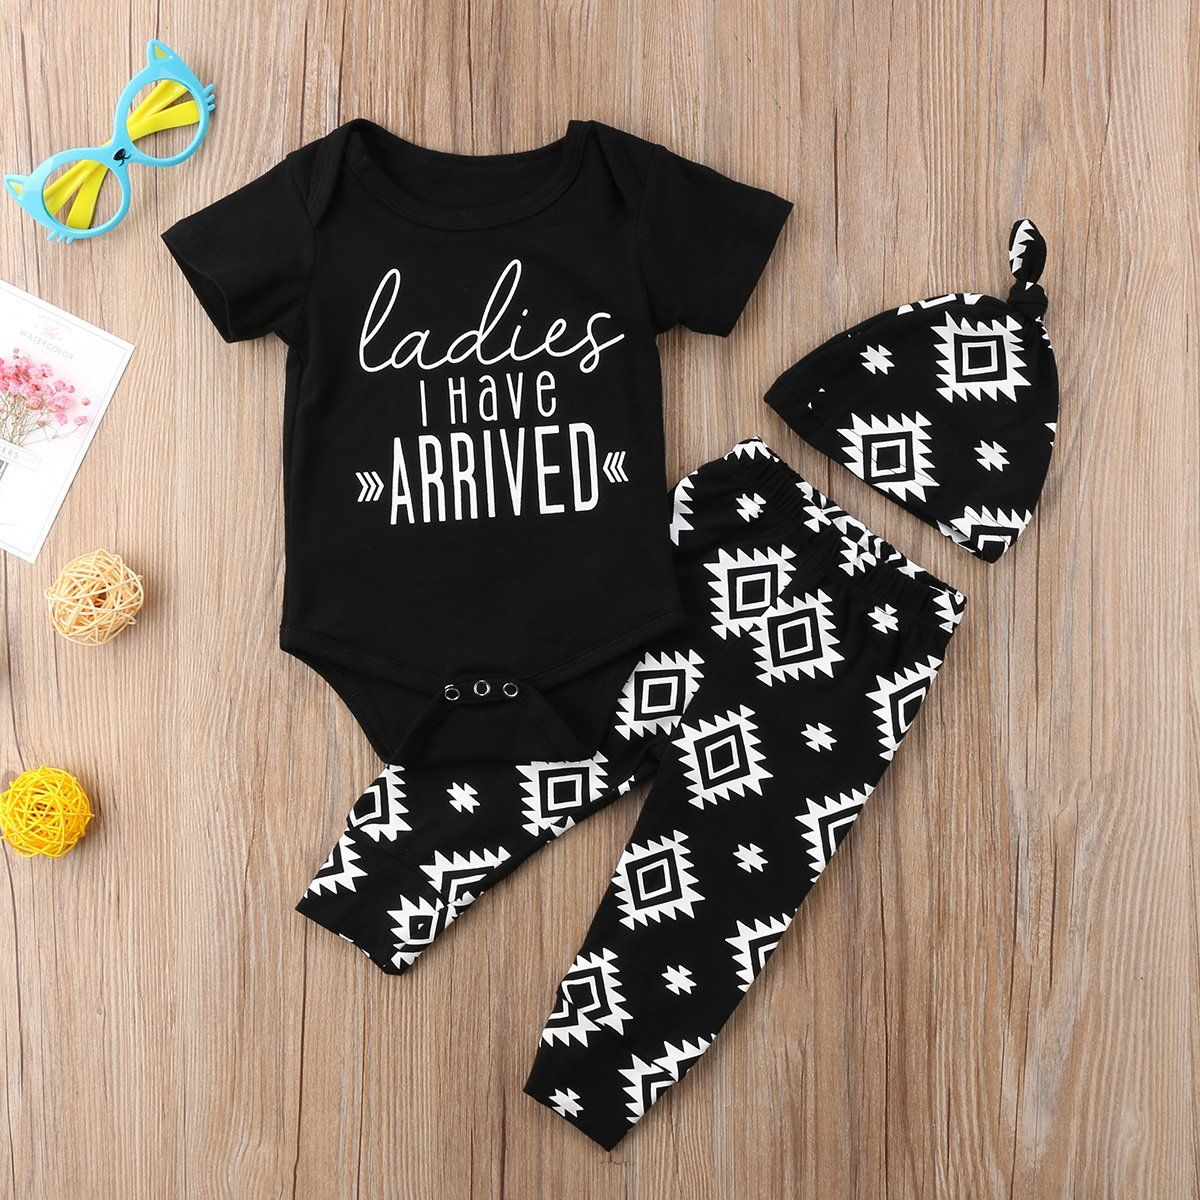 Ladies I Have Arrived Clothing Set (3 Piece Set)  Buy it today from www.babypetite.com  We sell cute and adorable baby clothing, shoes, socks, bibs, tableware, blankets, clothing sets, dresses, rompers, outfits and many more baby essentials.   Shop our products on Baby Petite today 👶  FREE Worldwide Shipping to over 230+ countries ✈️  www.babypetite.com  #pregnant #newborn #newbornbaby #babyboy #pregnancy #babypresent #toddlerclothing #bedsheets #babyideas #clothing